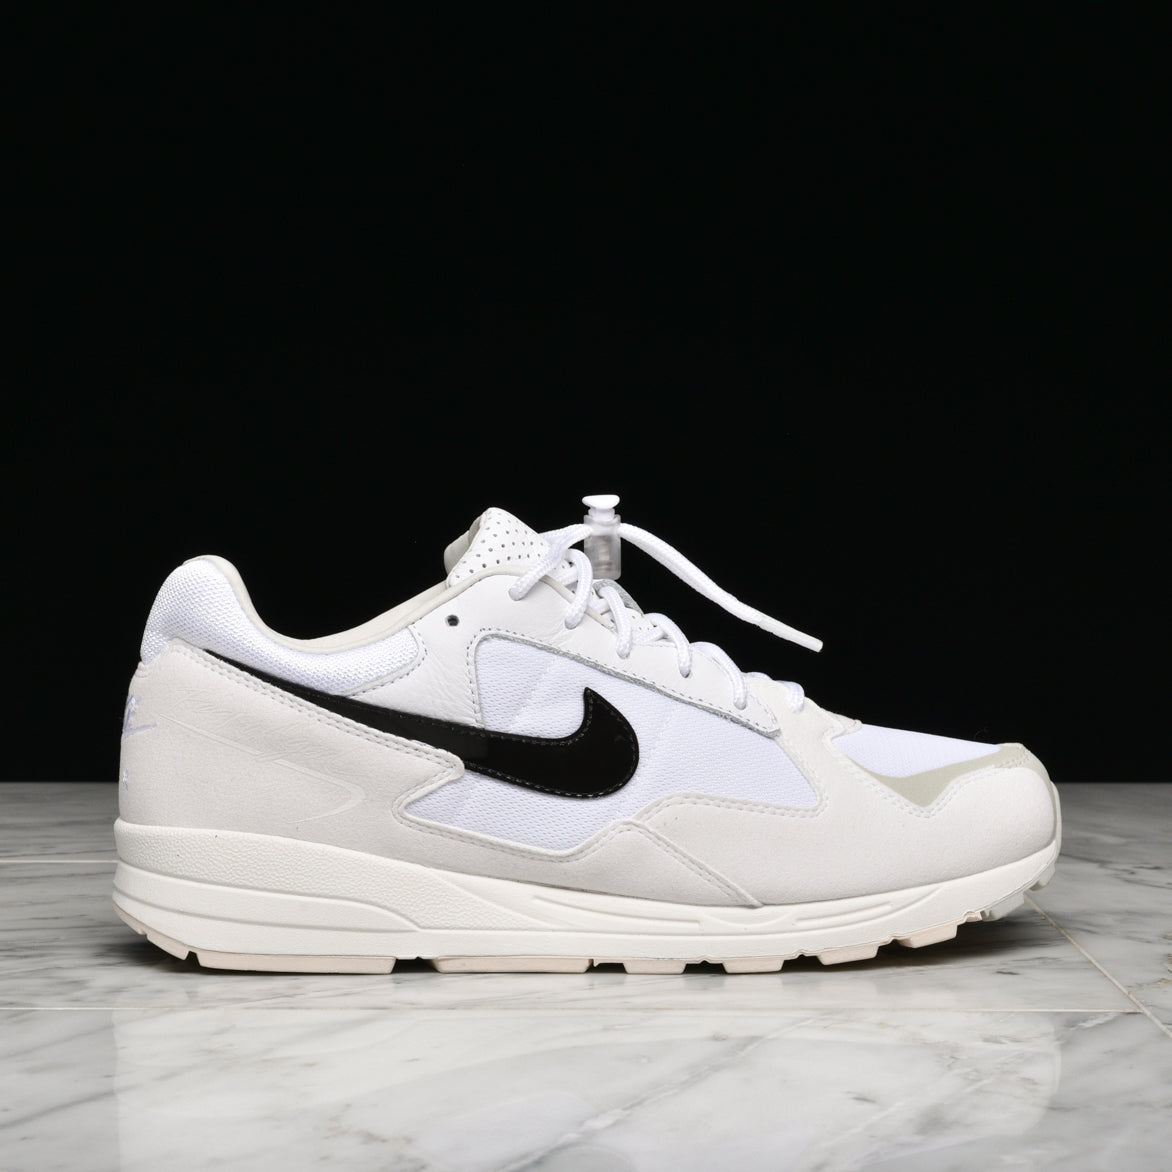 ca43b91a14958d FEAR OF GOD X NIKE AIR SKYLON II - WHITE